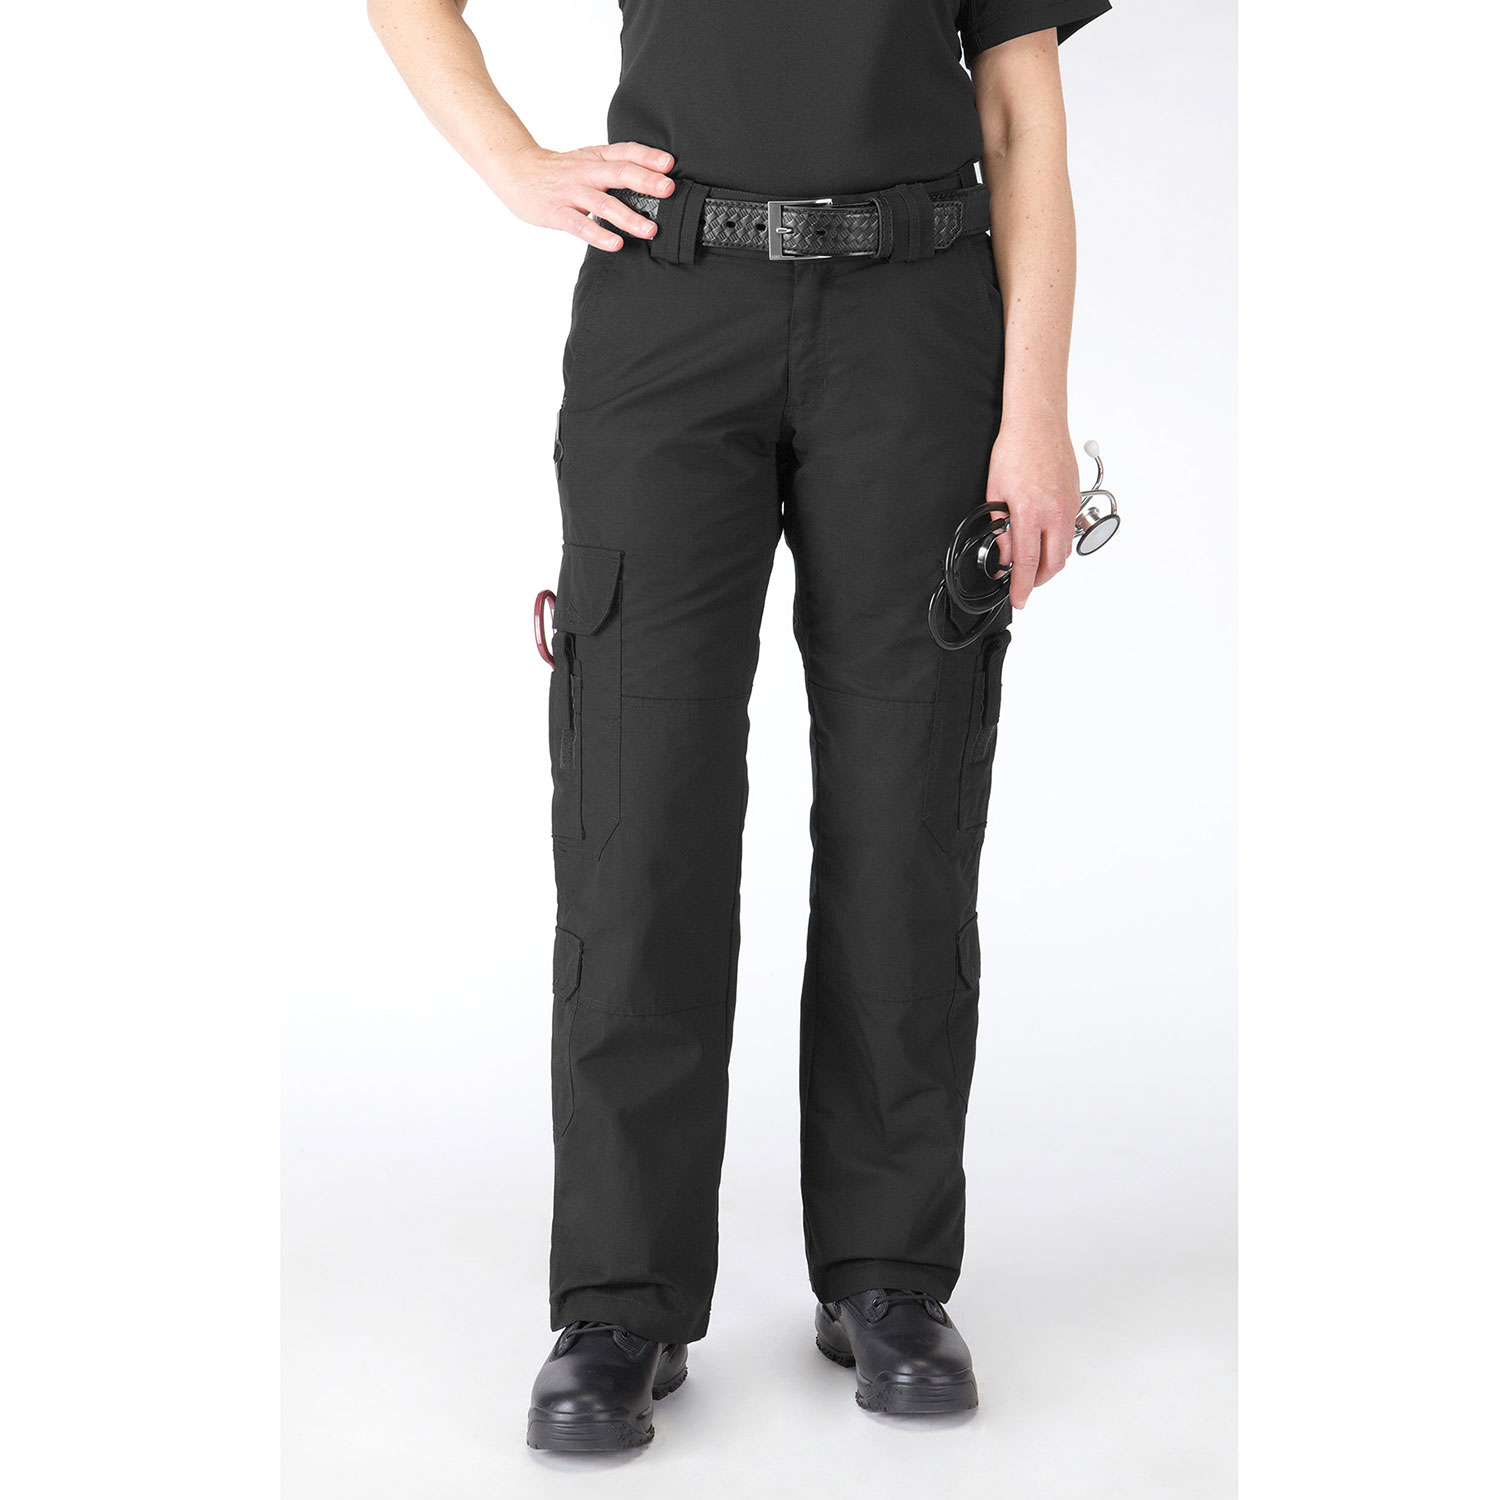 316079888aa 5.11 Tactical Women s Taclite EMS Pant